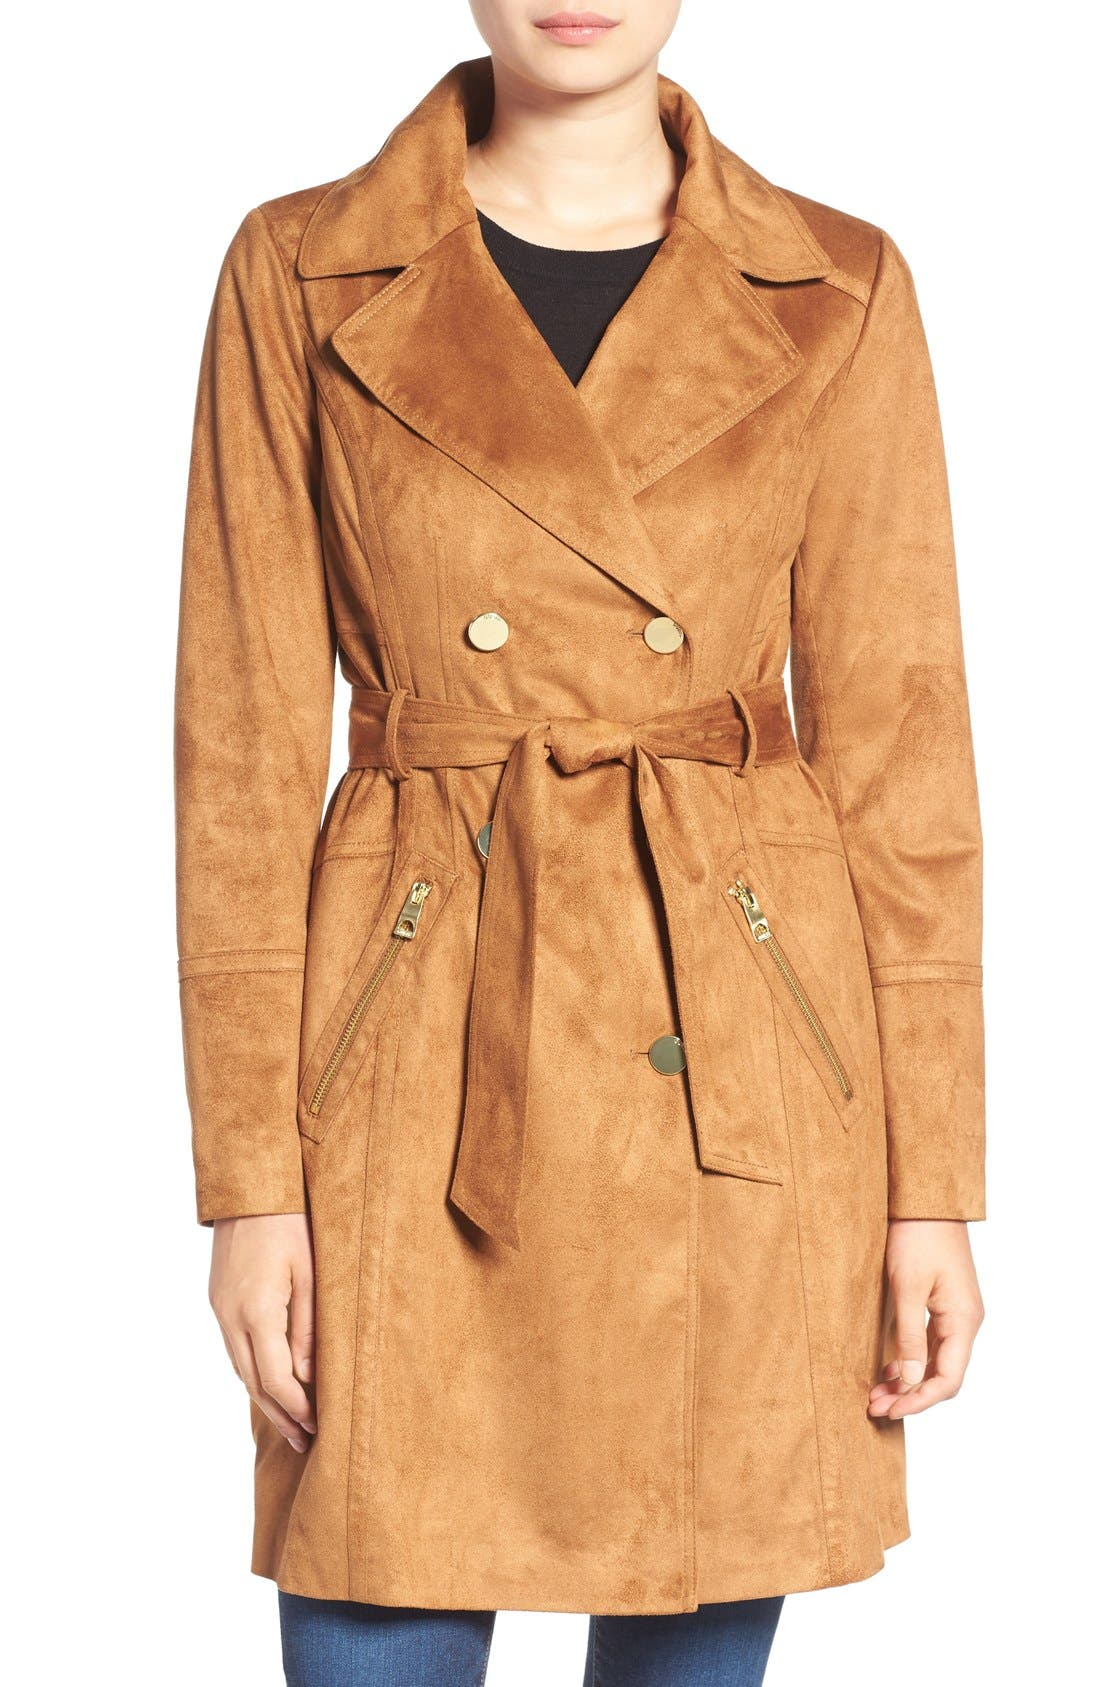 GUESS Faux Suede Double Breasted Trench Coat